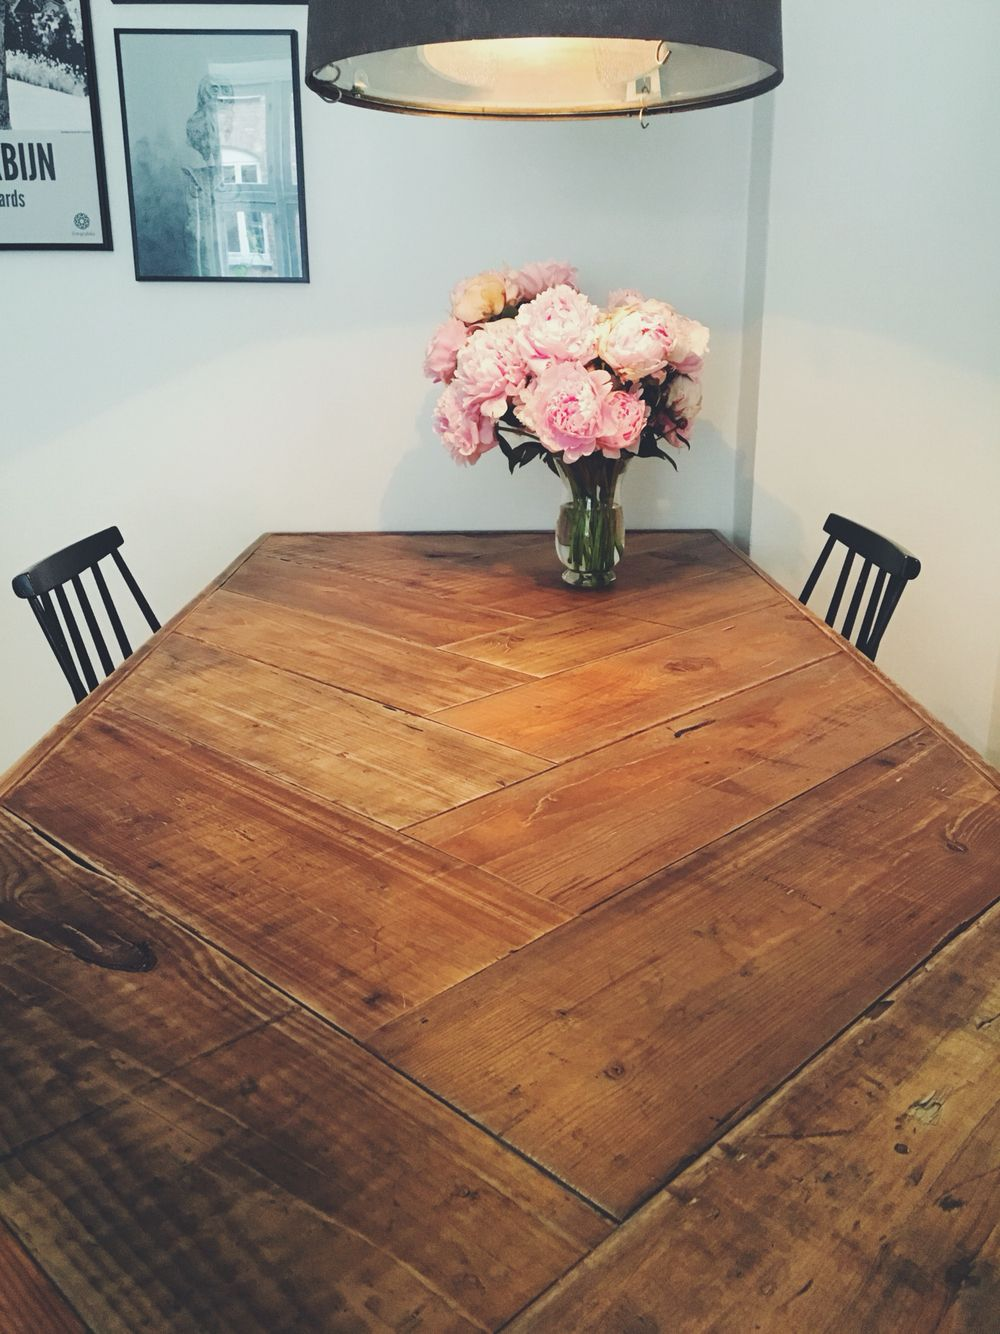 Diy Farmhouse Table Trestle Table The Navage Patch Diy Farmhouse Table Diy Dining Table Diy Dining Room Table